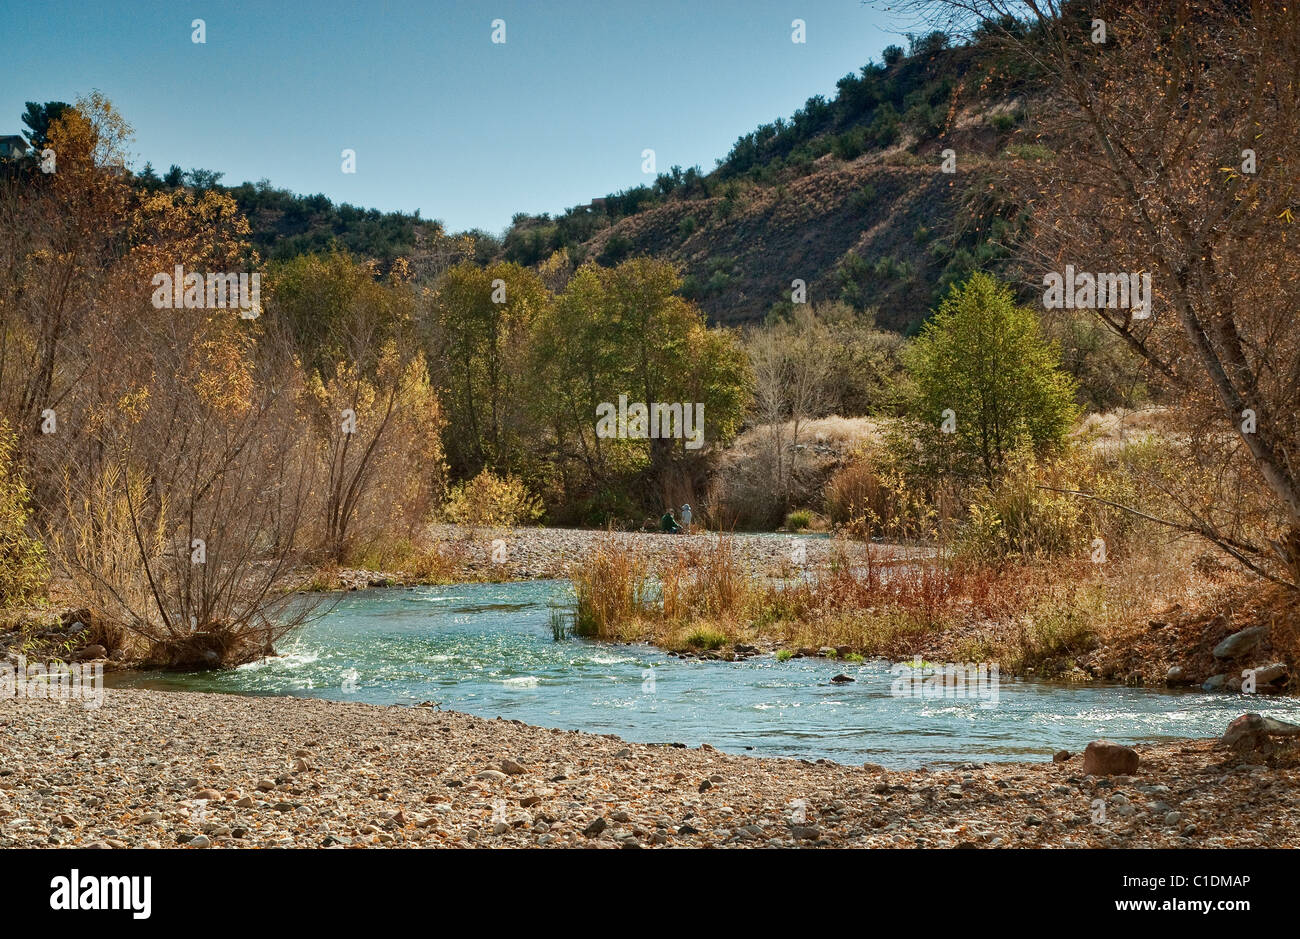 Cottonwoods and willows at Verde River Greenway near town of Cottonwood, Arizona, USA - Stock Image